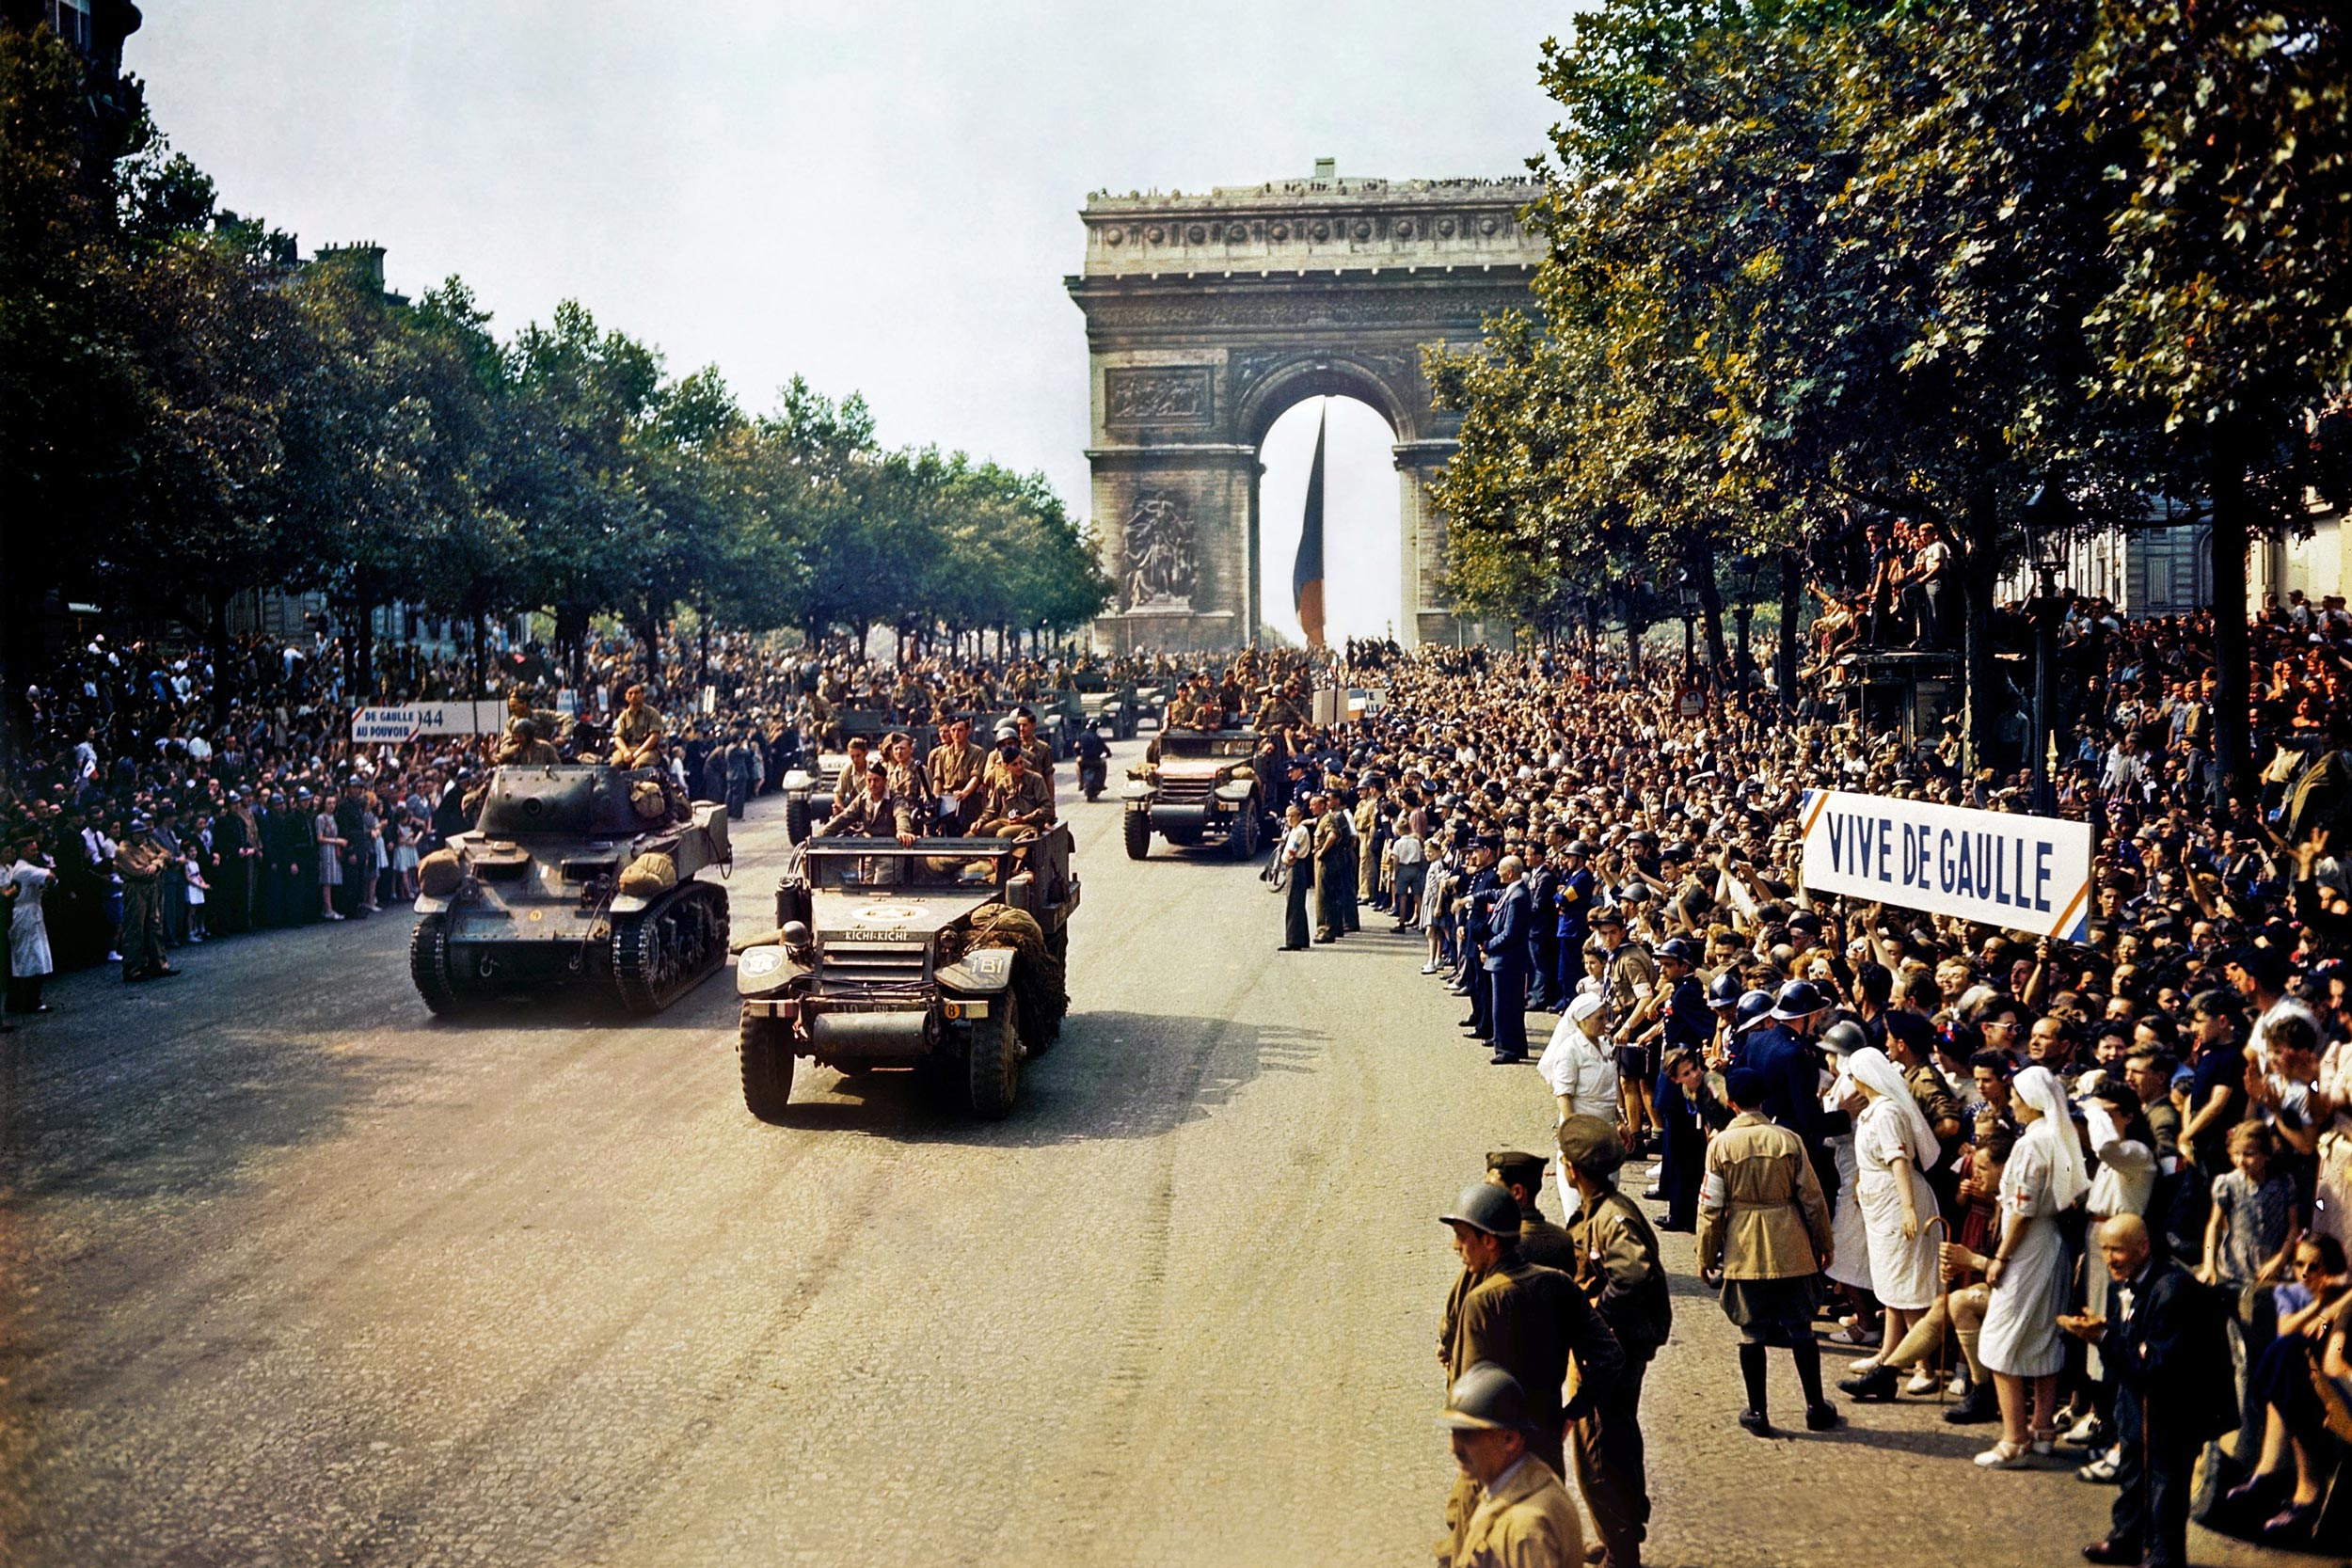 Crowds line the Champs-Elysees in Paris as French forces retake the city. (Photo: public domain)